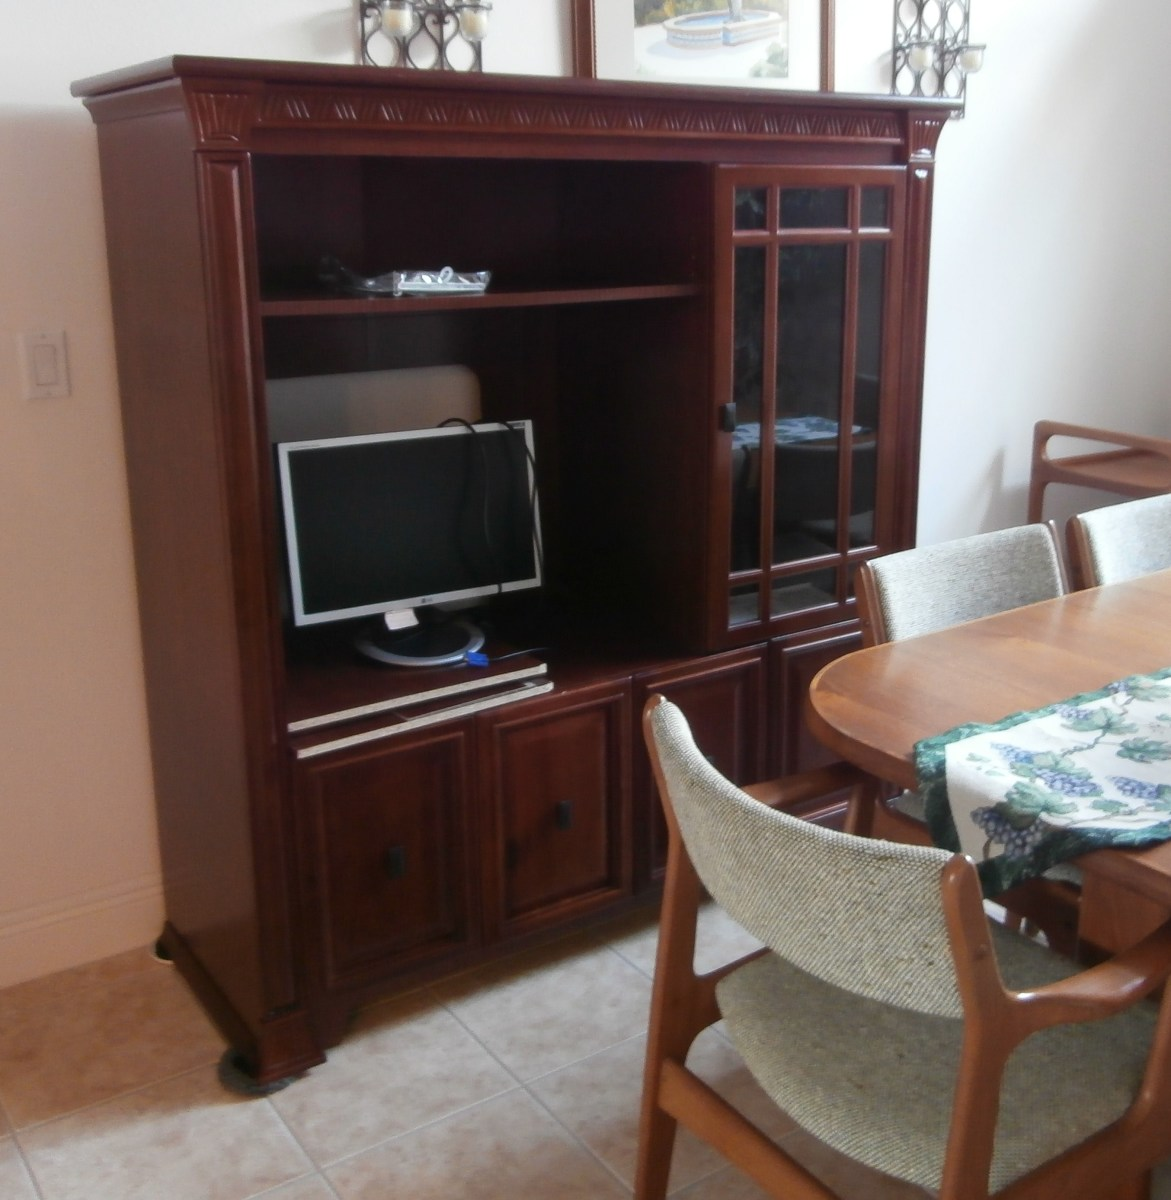 These chunky pieces of furniture fell out-of-fashion when flat screen televisions no longer fit them.